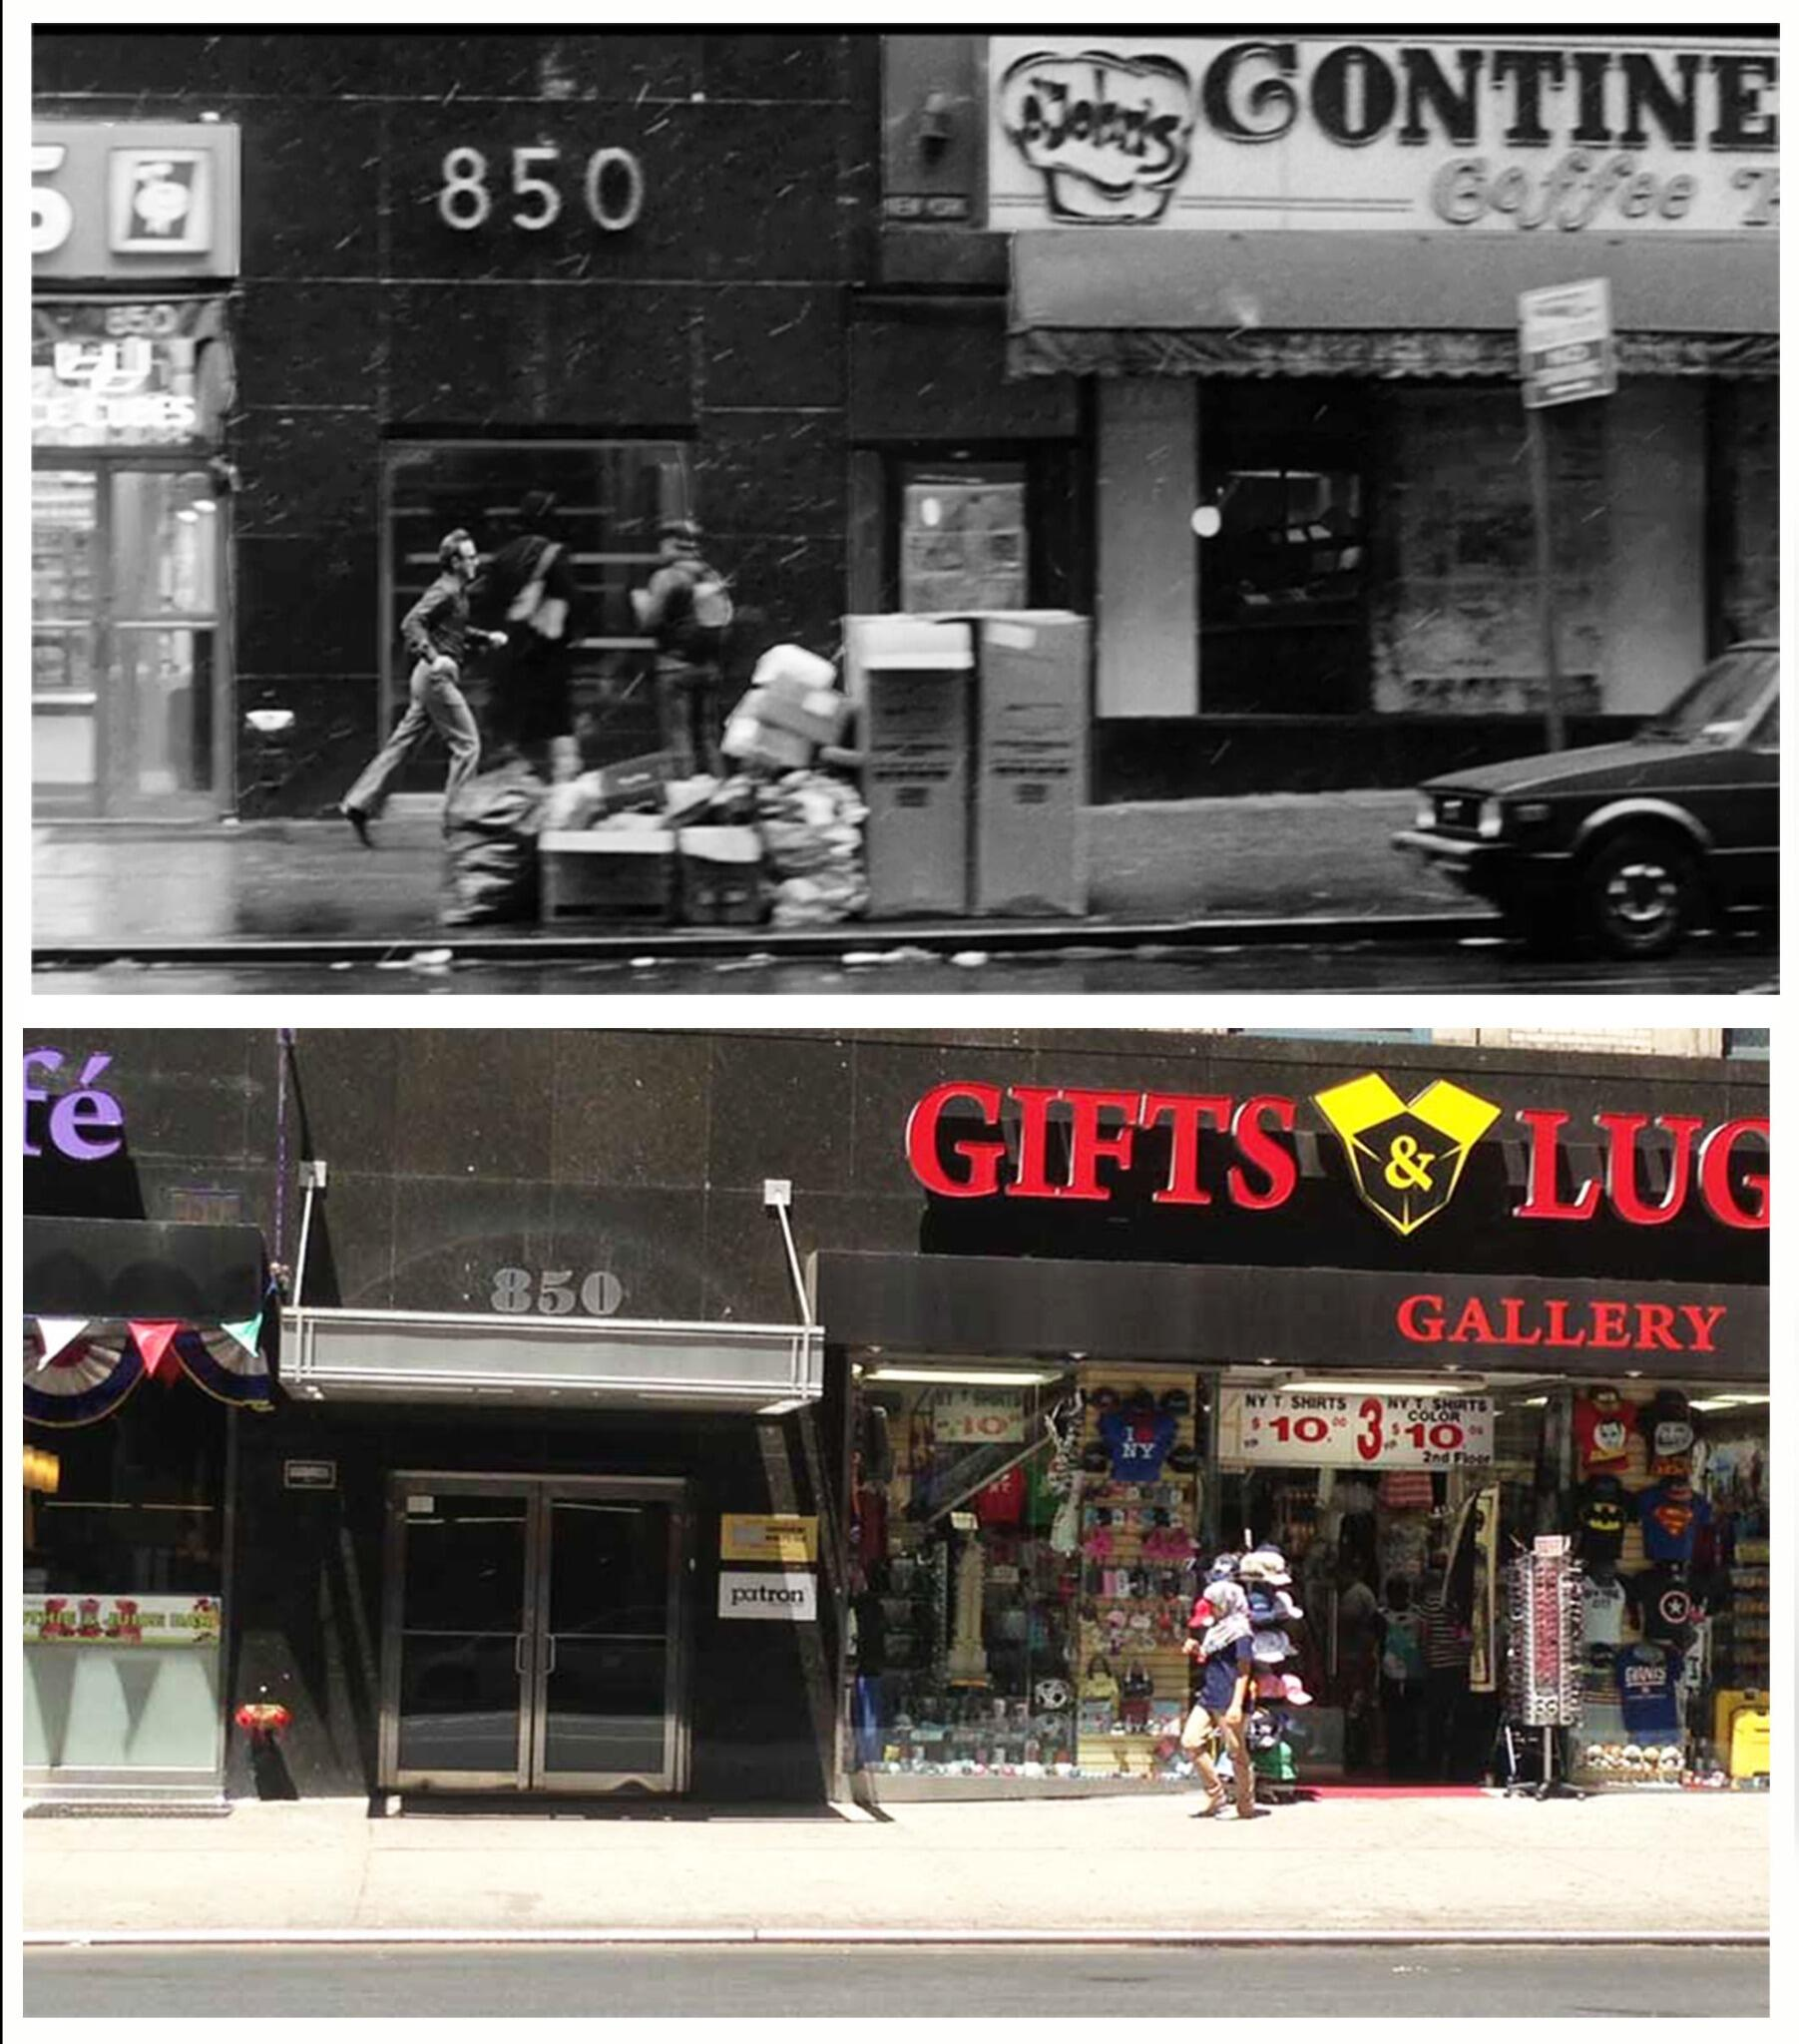 A new @SCENEPAST then & now from Woody Allen's 1983 film BROADWAY DANNY ROSE-7th Ave & 54th St #NewYork #iPhone #app http://t.co/6teN7fupwG